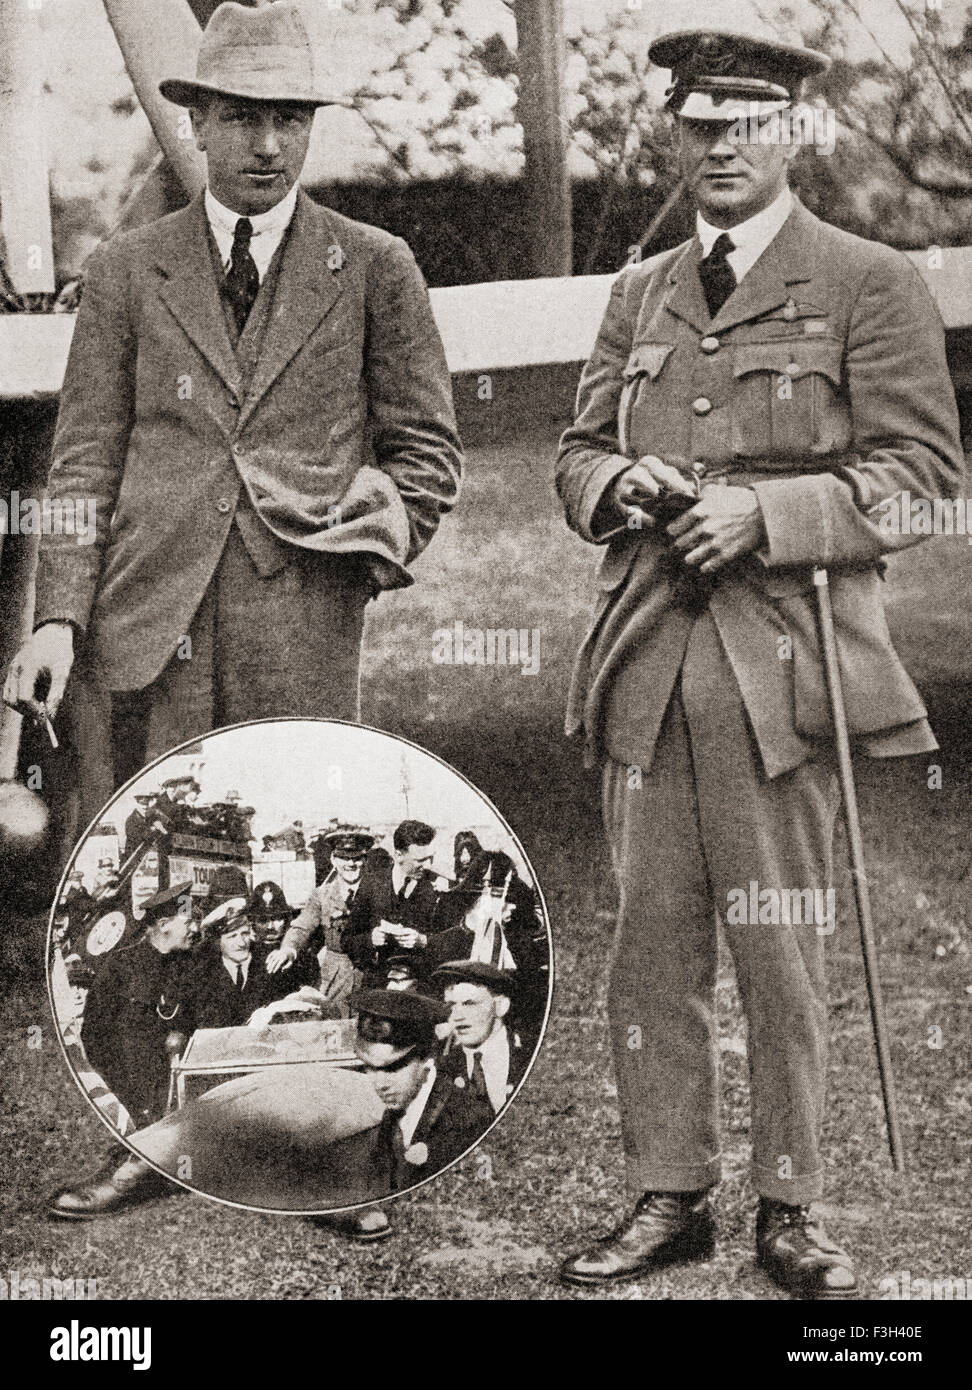 Lieutenant Colonel Sir Arthur Whitten Brown, 1886– 1948, left, and Captain Sir John William Alcock, 1892 – 1919, - Stock Image